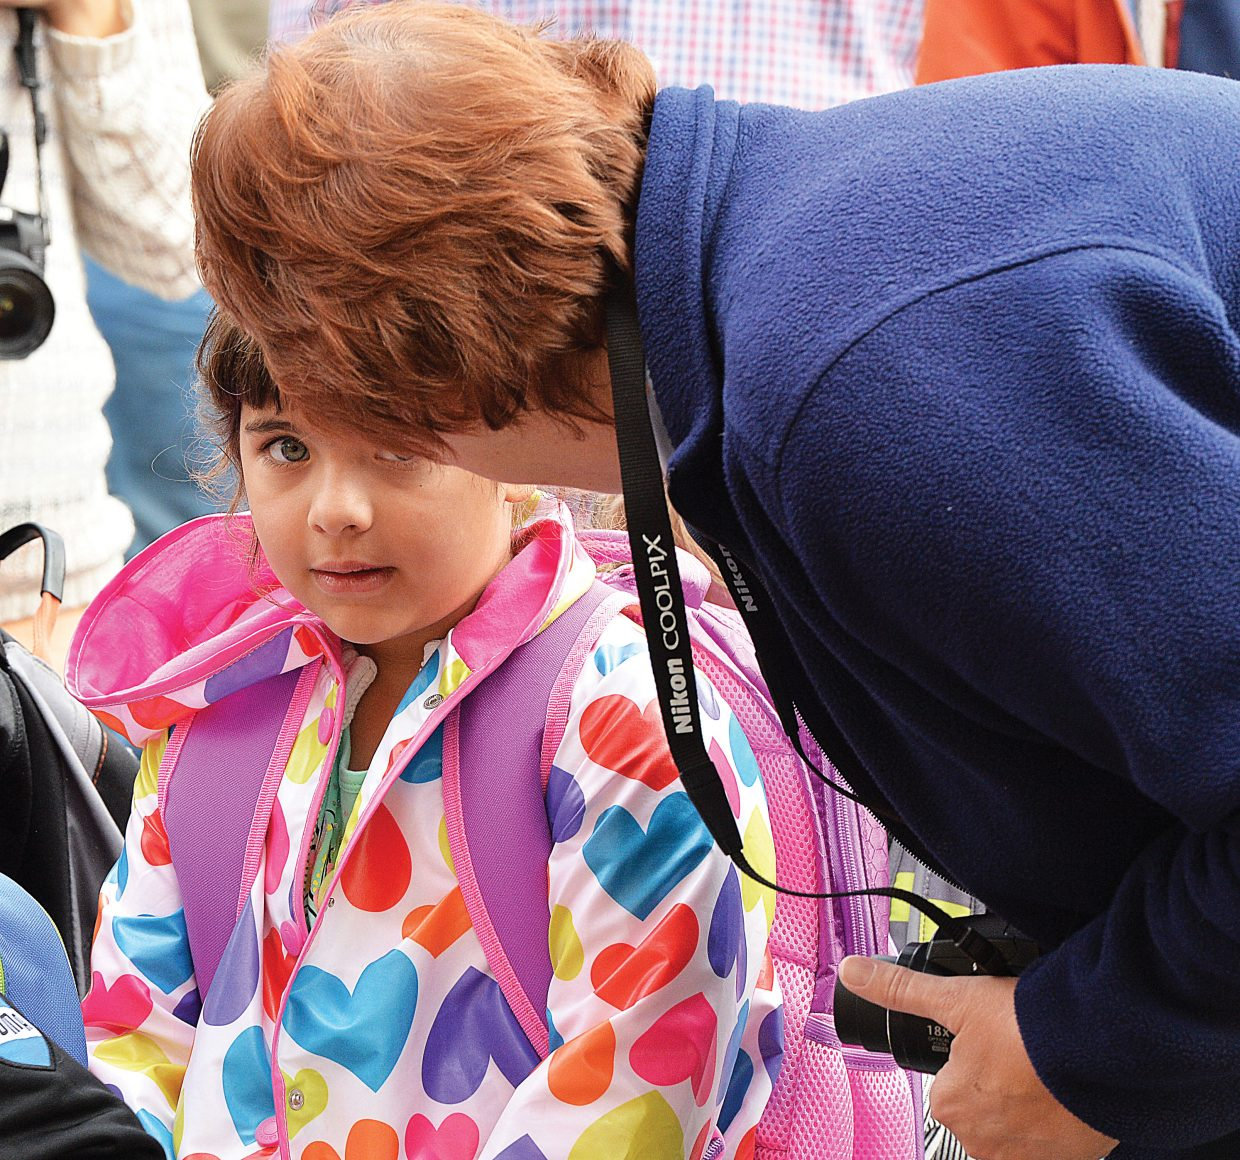 Kindergartner Kaylee Scott says goodbye to her grandmother at Soda Creek Elementary School on Wednesday morning. Wednesday marked the first day of school for kindergartners in Steamboat Springs.